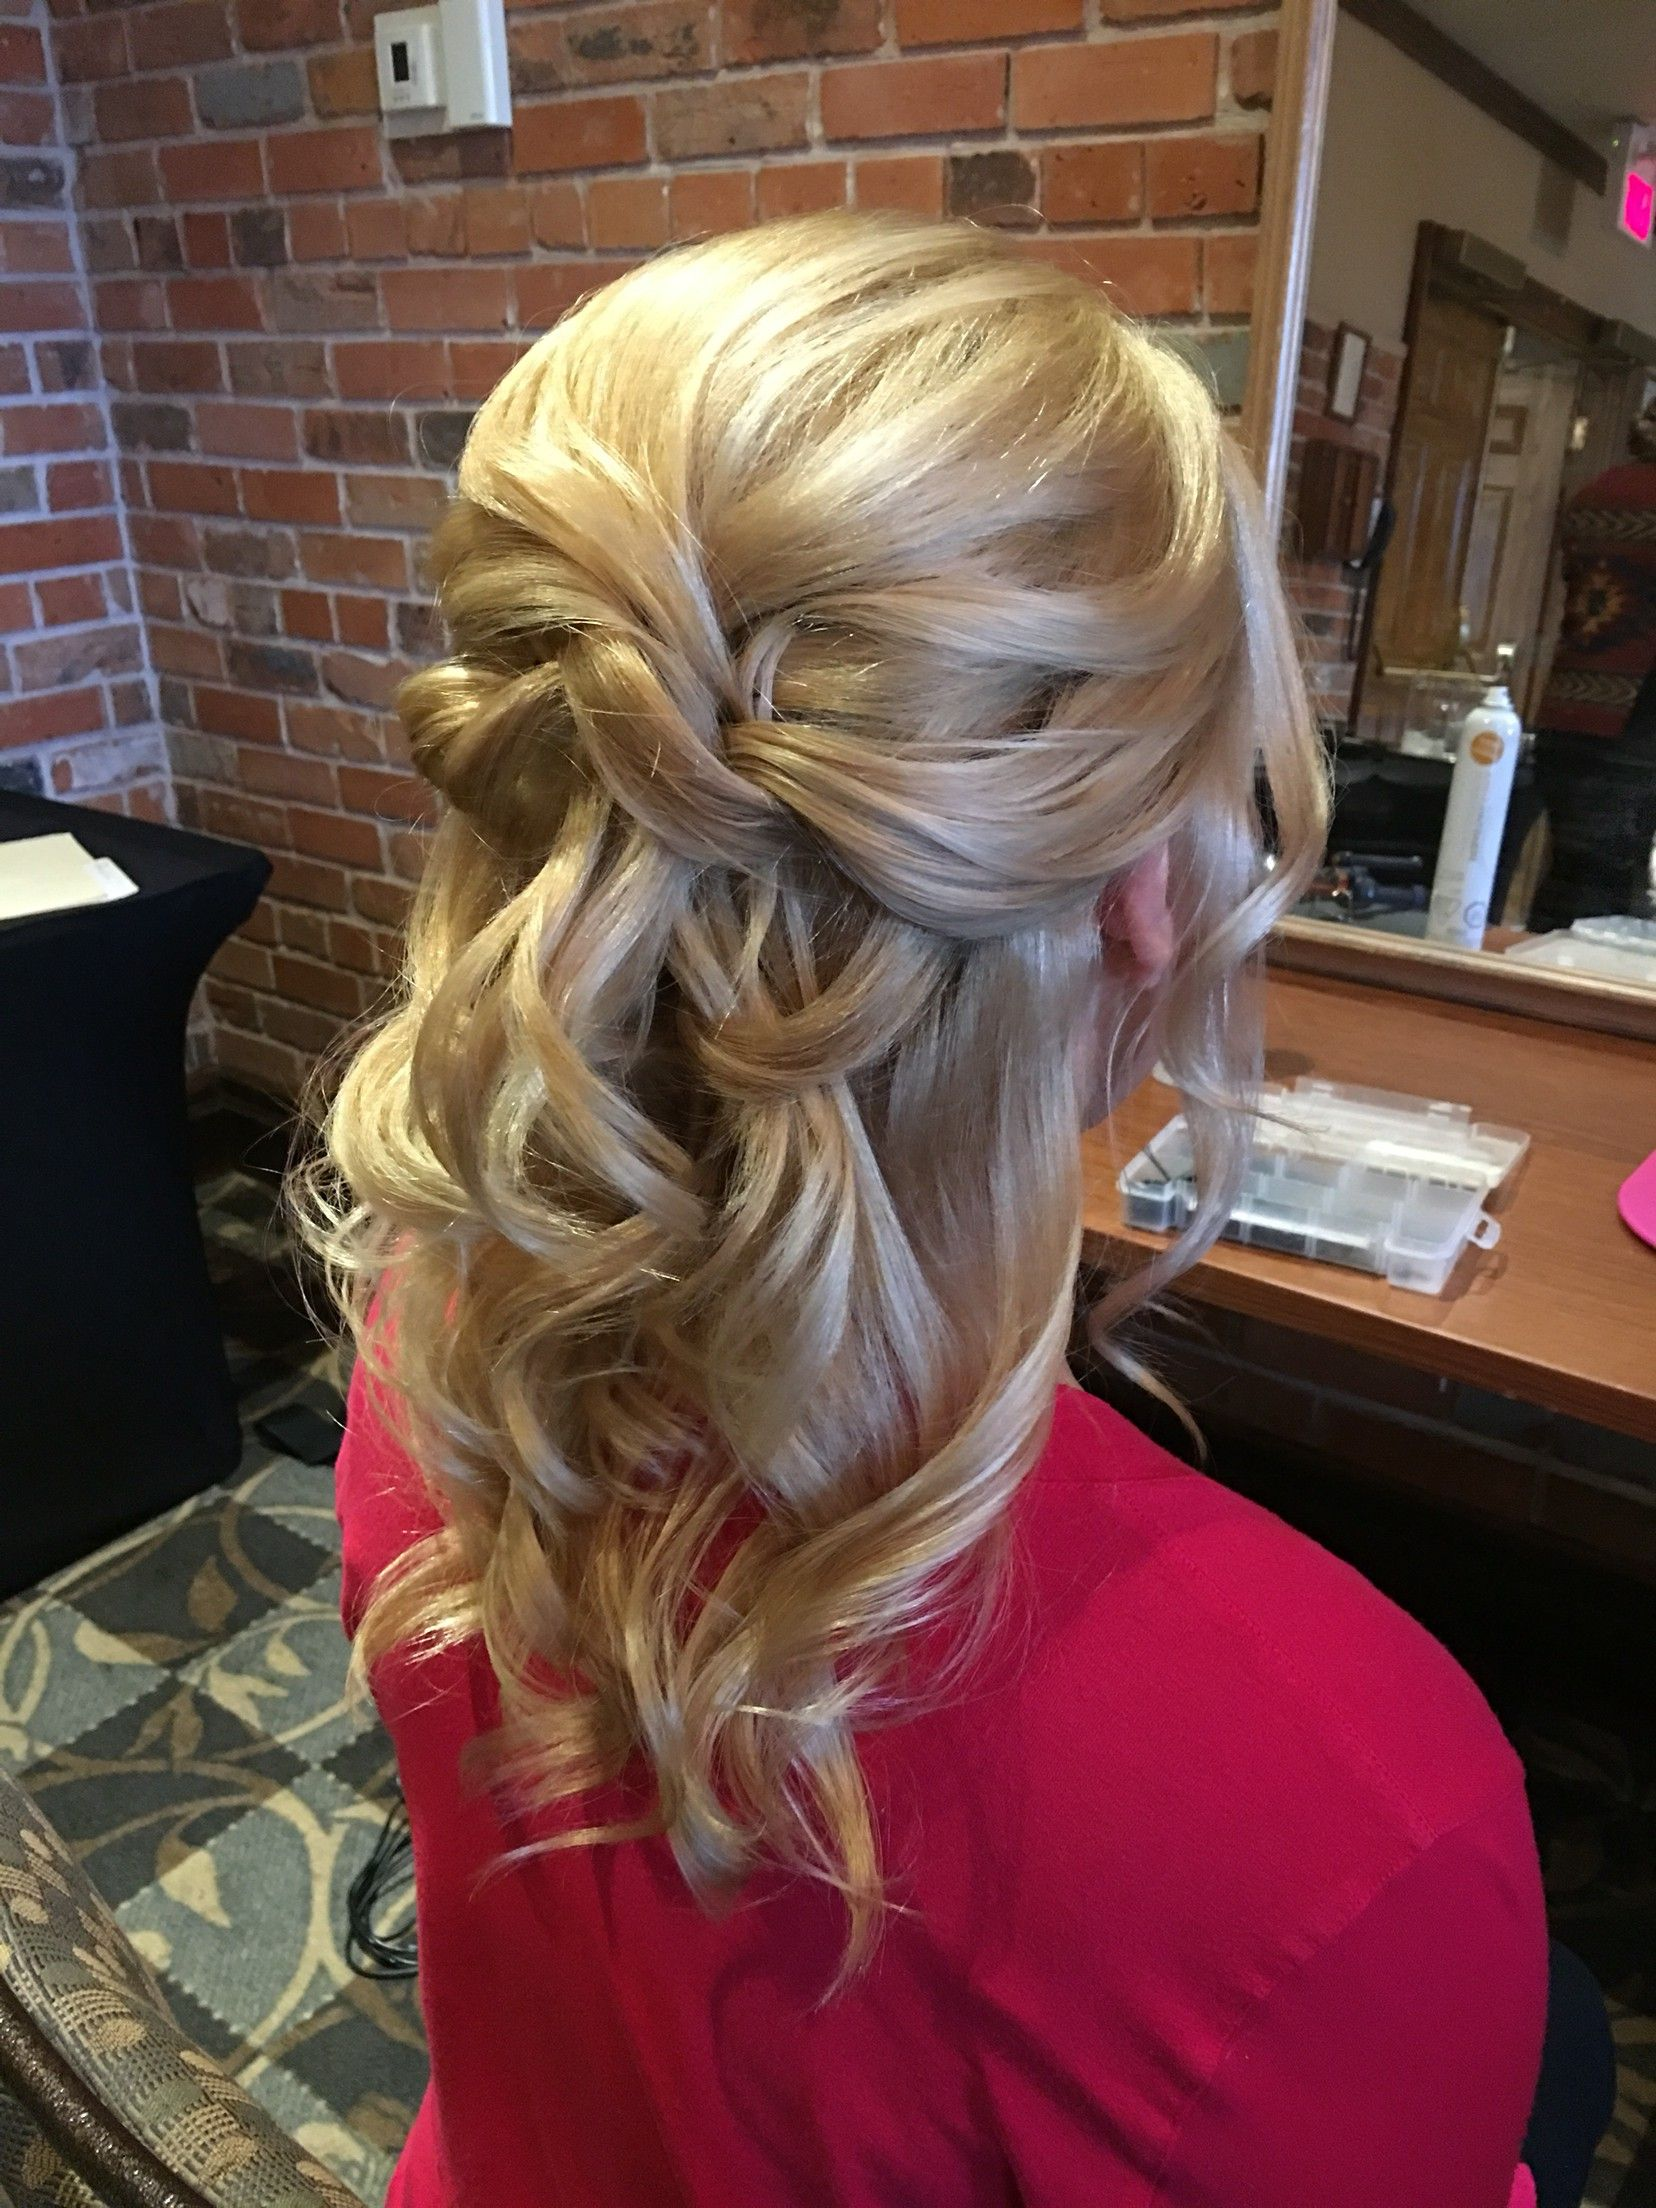 1 2 Up Sort Of Braid Mother Of The Bride Hair Mother Of The Groom Hairstyles Wedding Hairstyles For Medium Hair